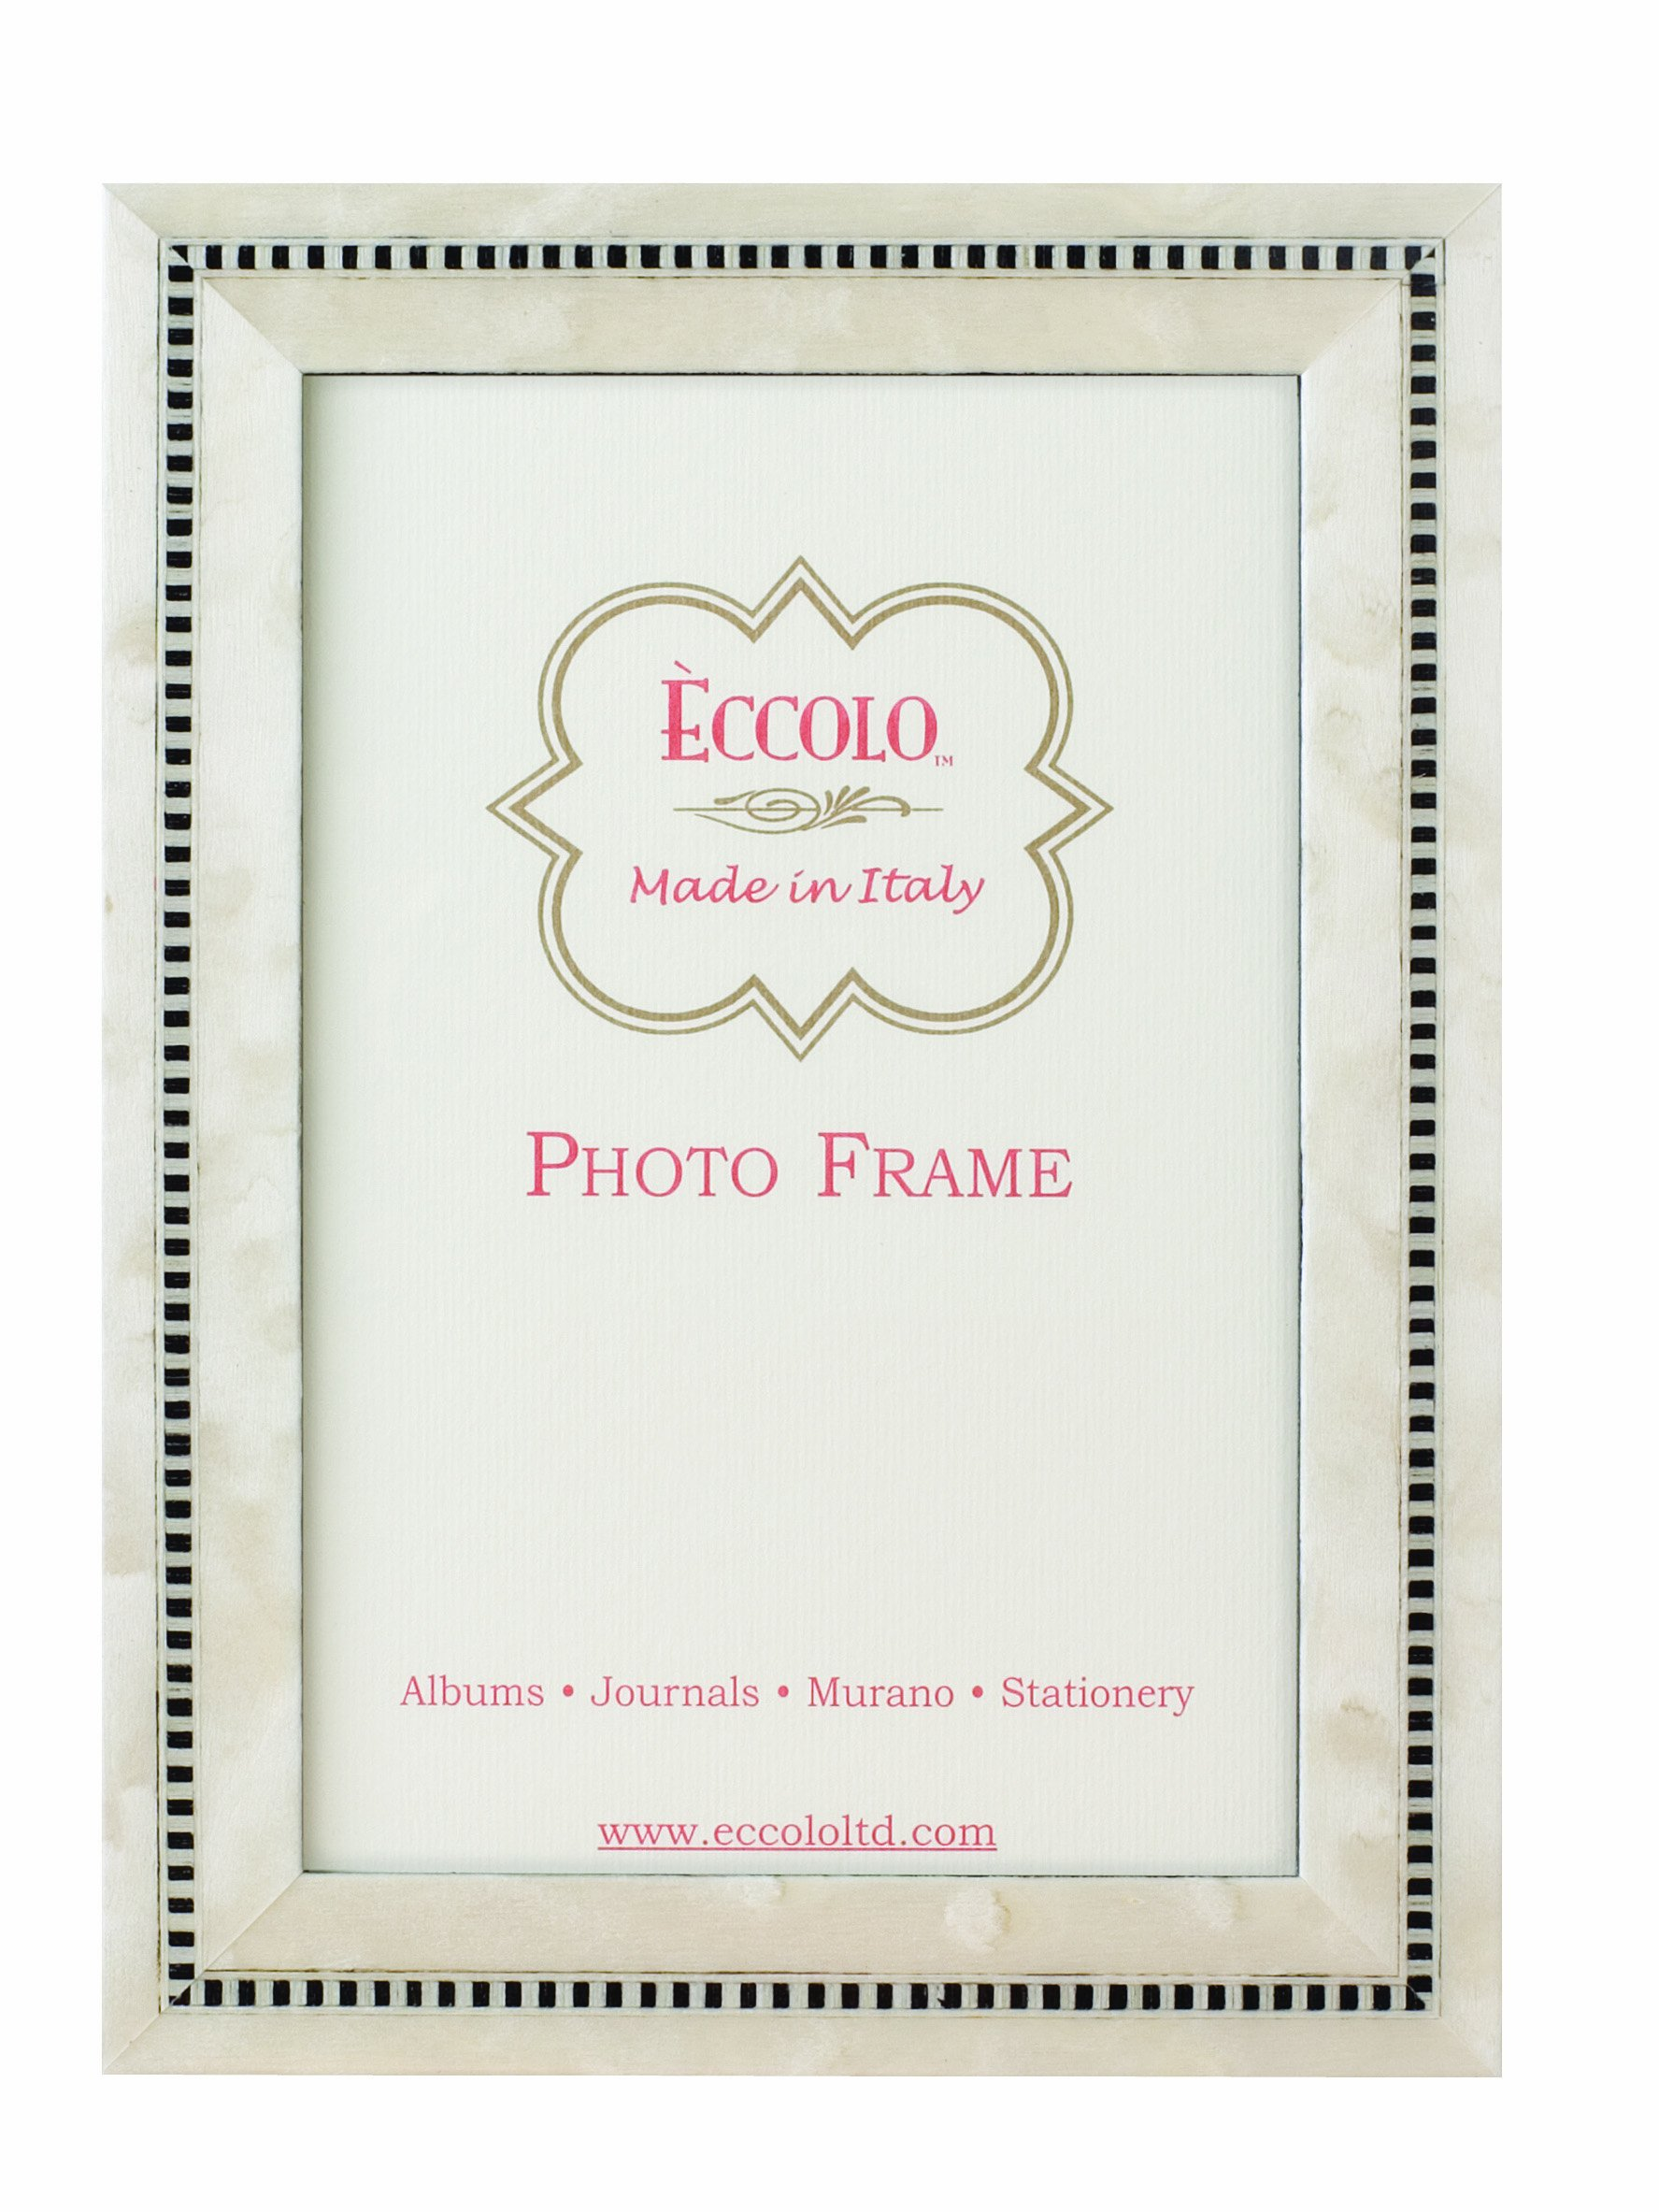 Eccolo White Anniversary Wood Frame, 8 by 10-Inch